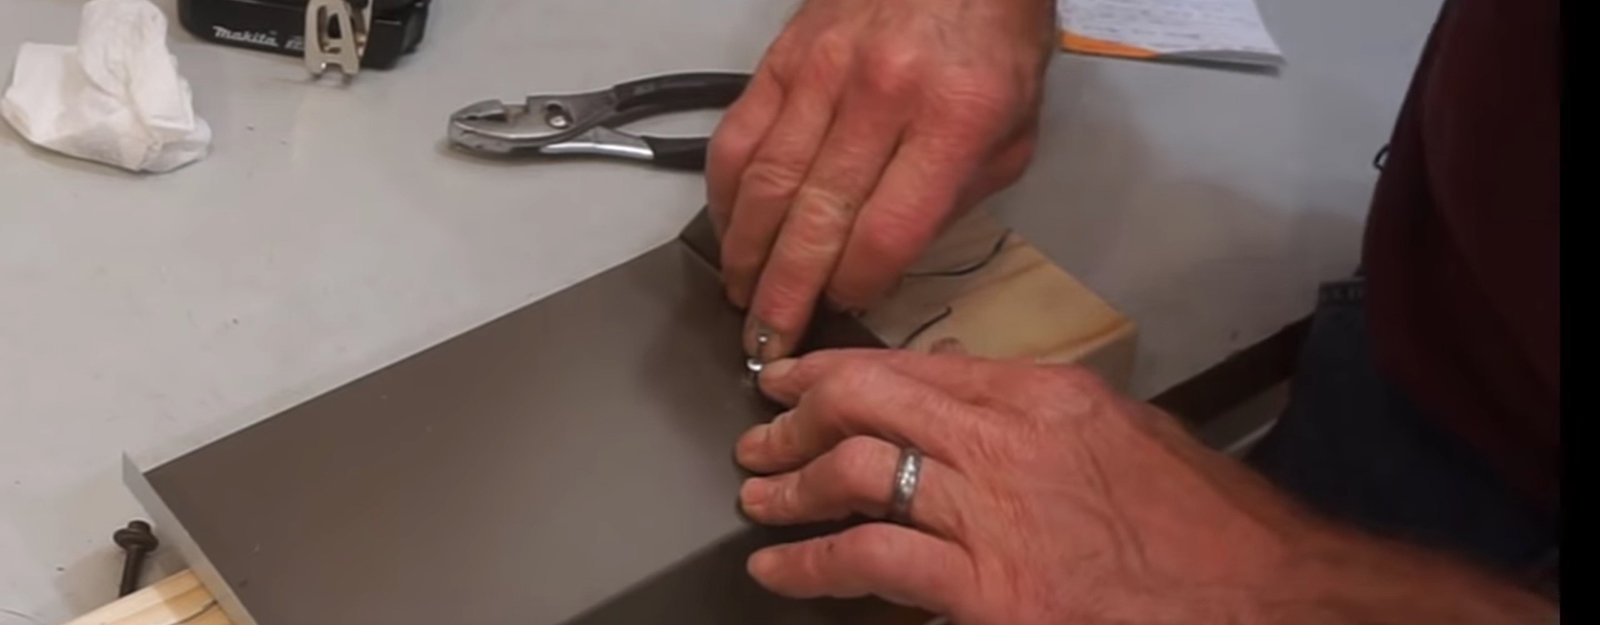 How to Easily Attach Sheet Metal to Wood: The